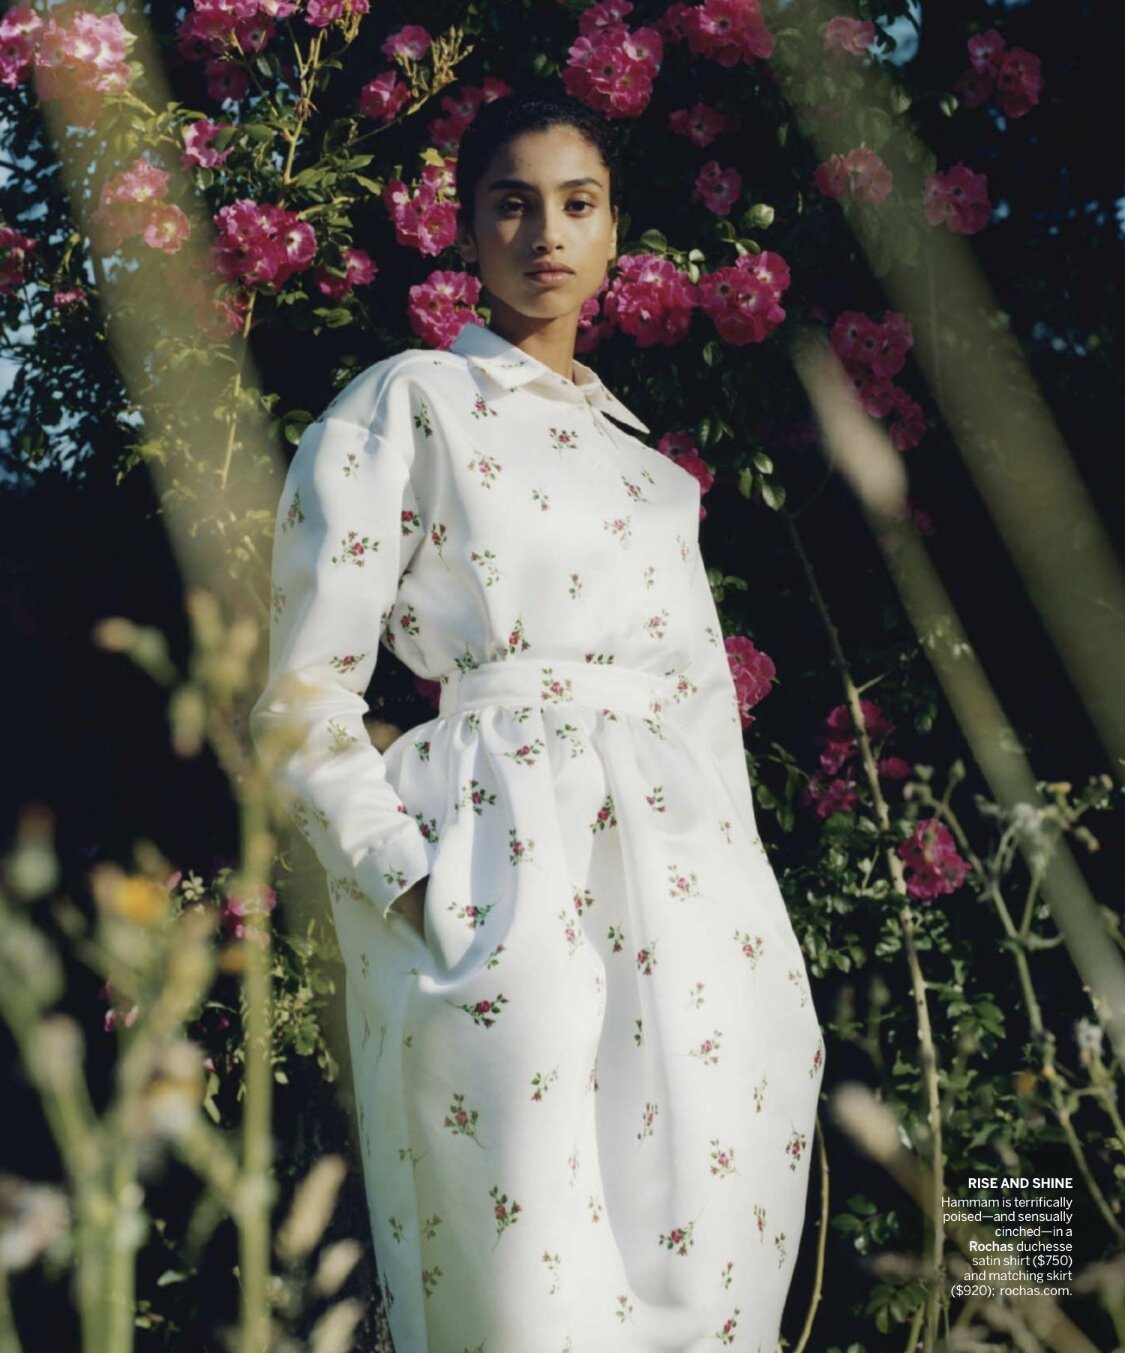 Imaan Hannam by Tyler Mitchell in Blooming Anew for Vogue US Sept 2019 (5).jpg